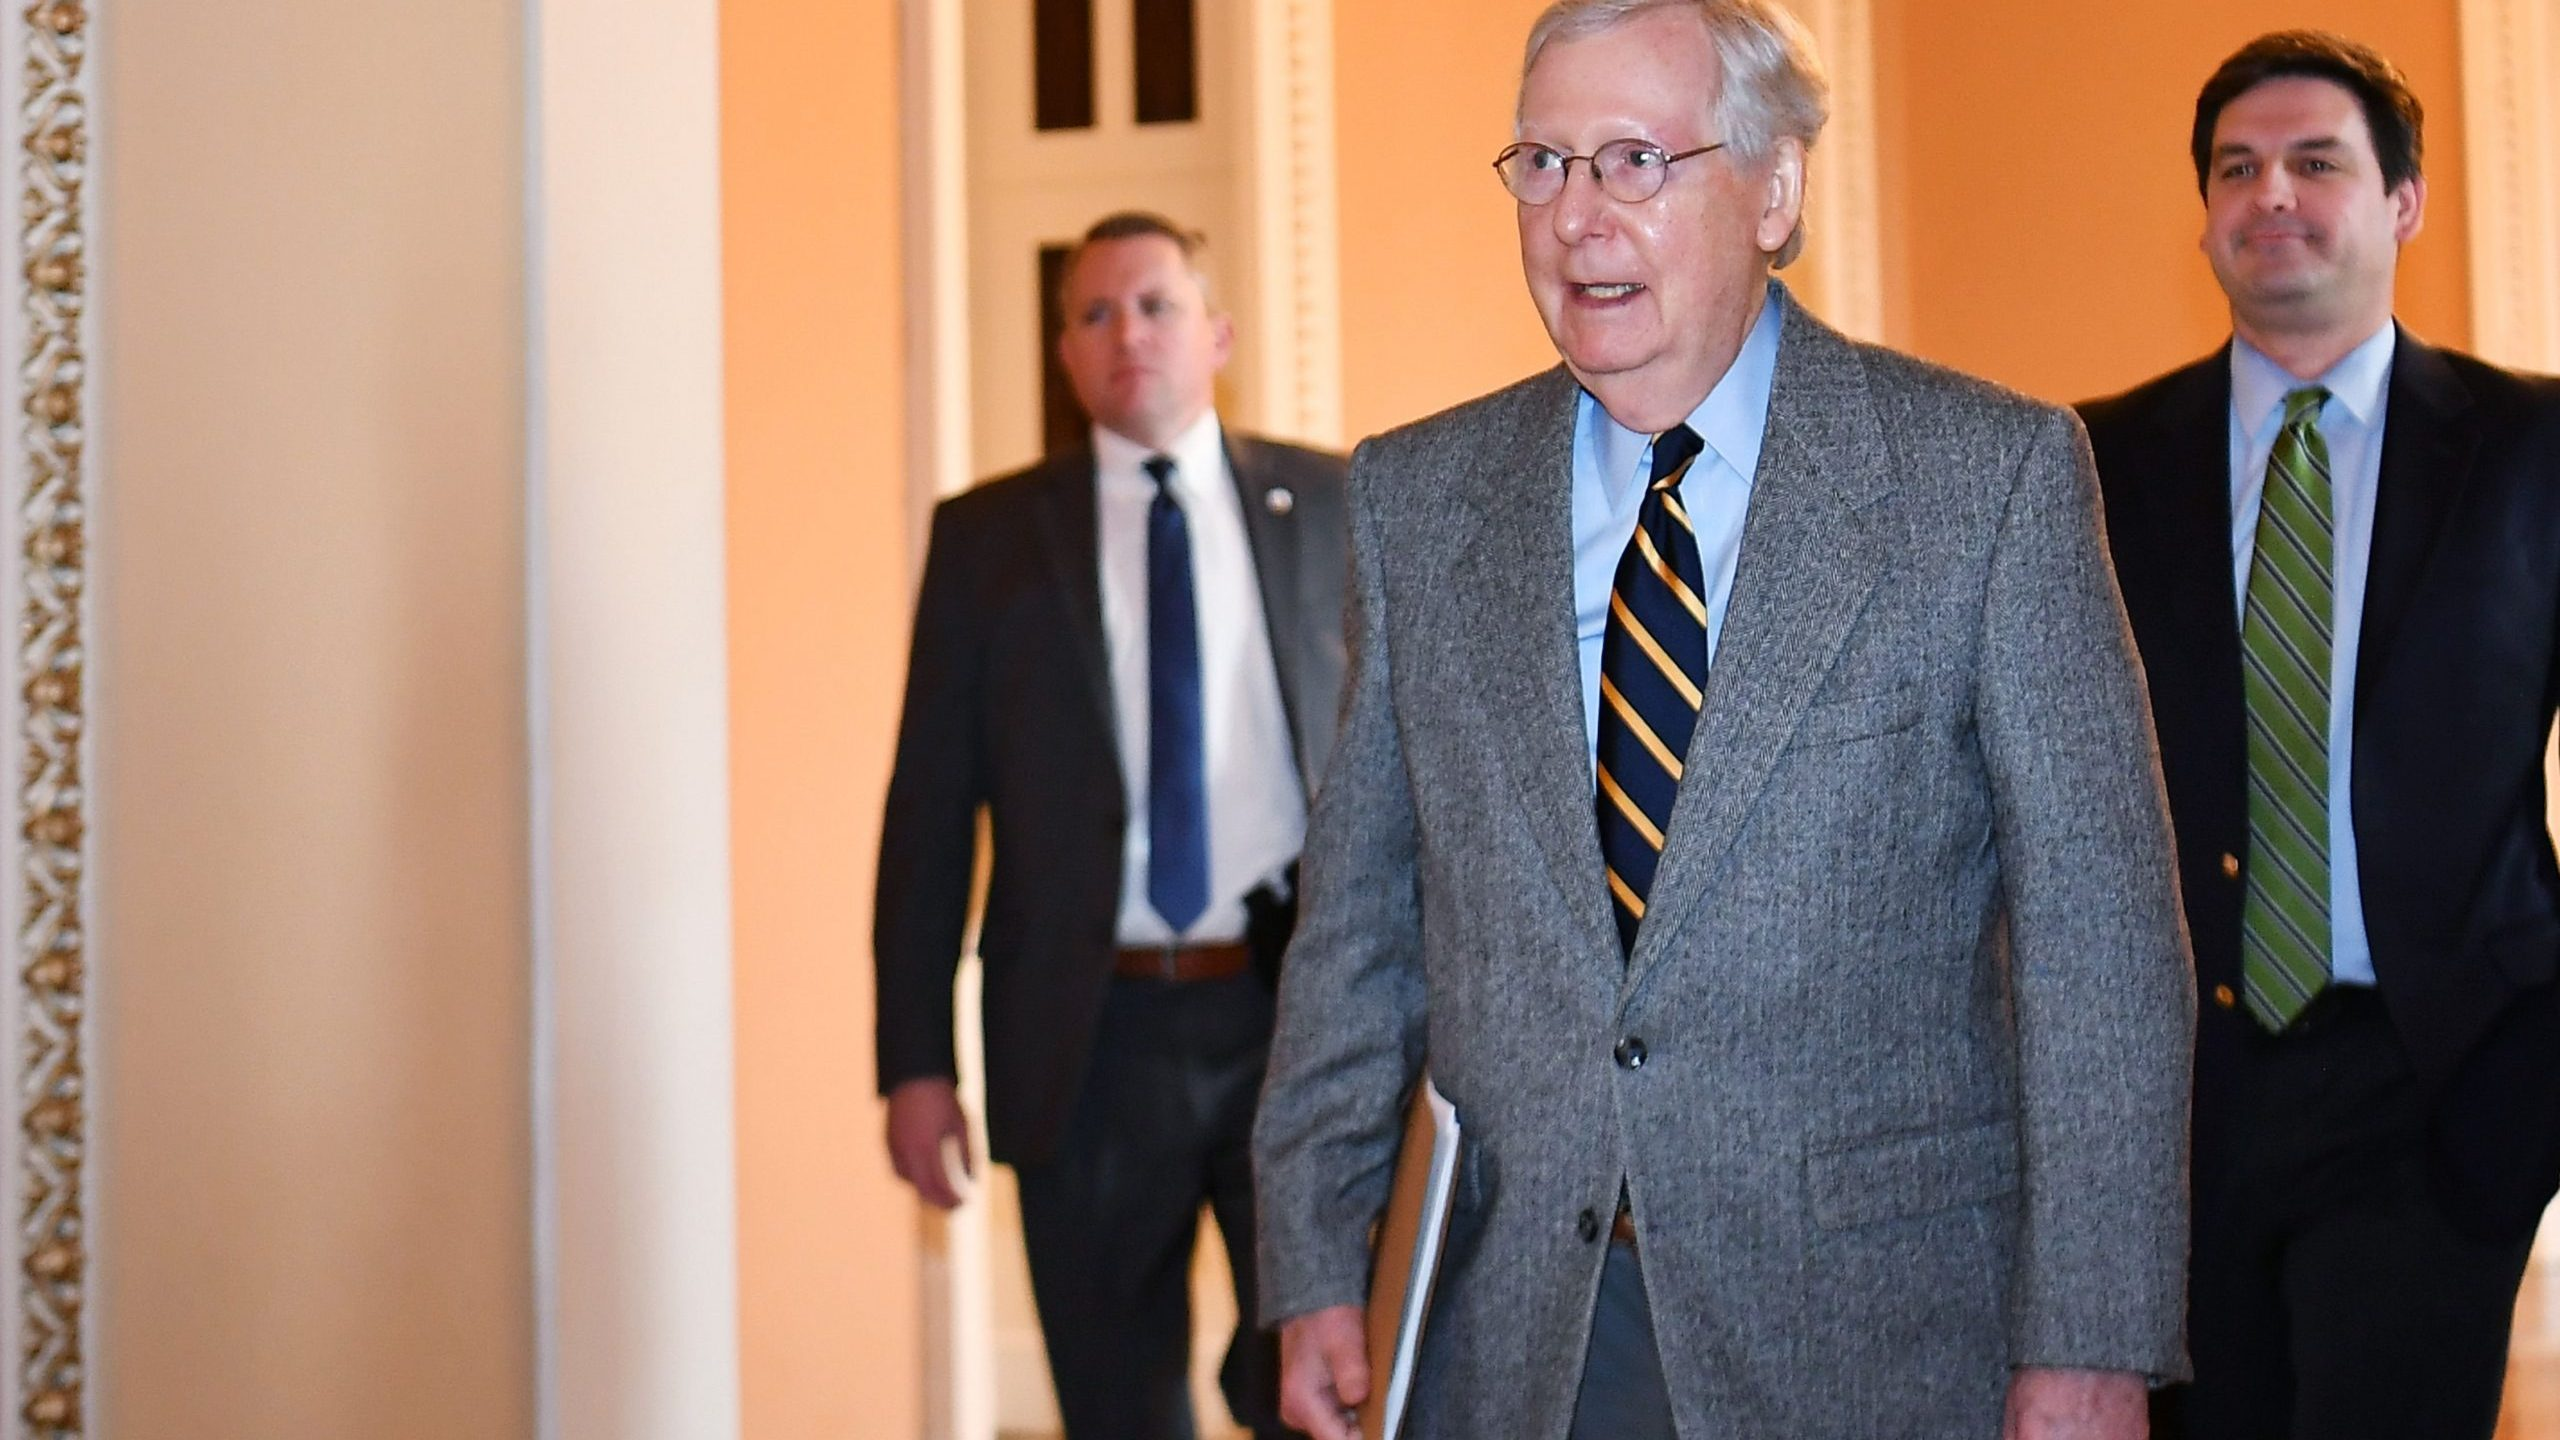 U.S. Senate Majority Leader Mitch McConnell makes his way to the Senate Chamber at the U.S. Capitol on Jan. 3, 2020. (Credit: MANDEL NGAN/AFP via Getty Images)